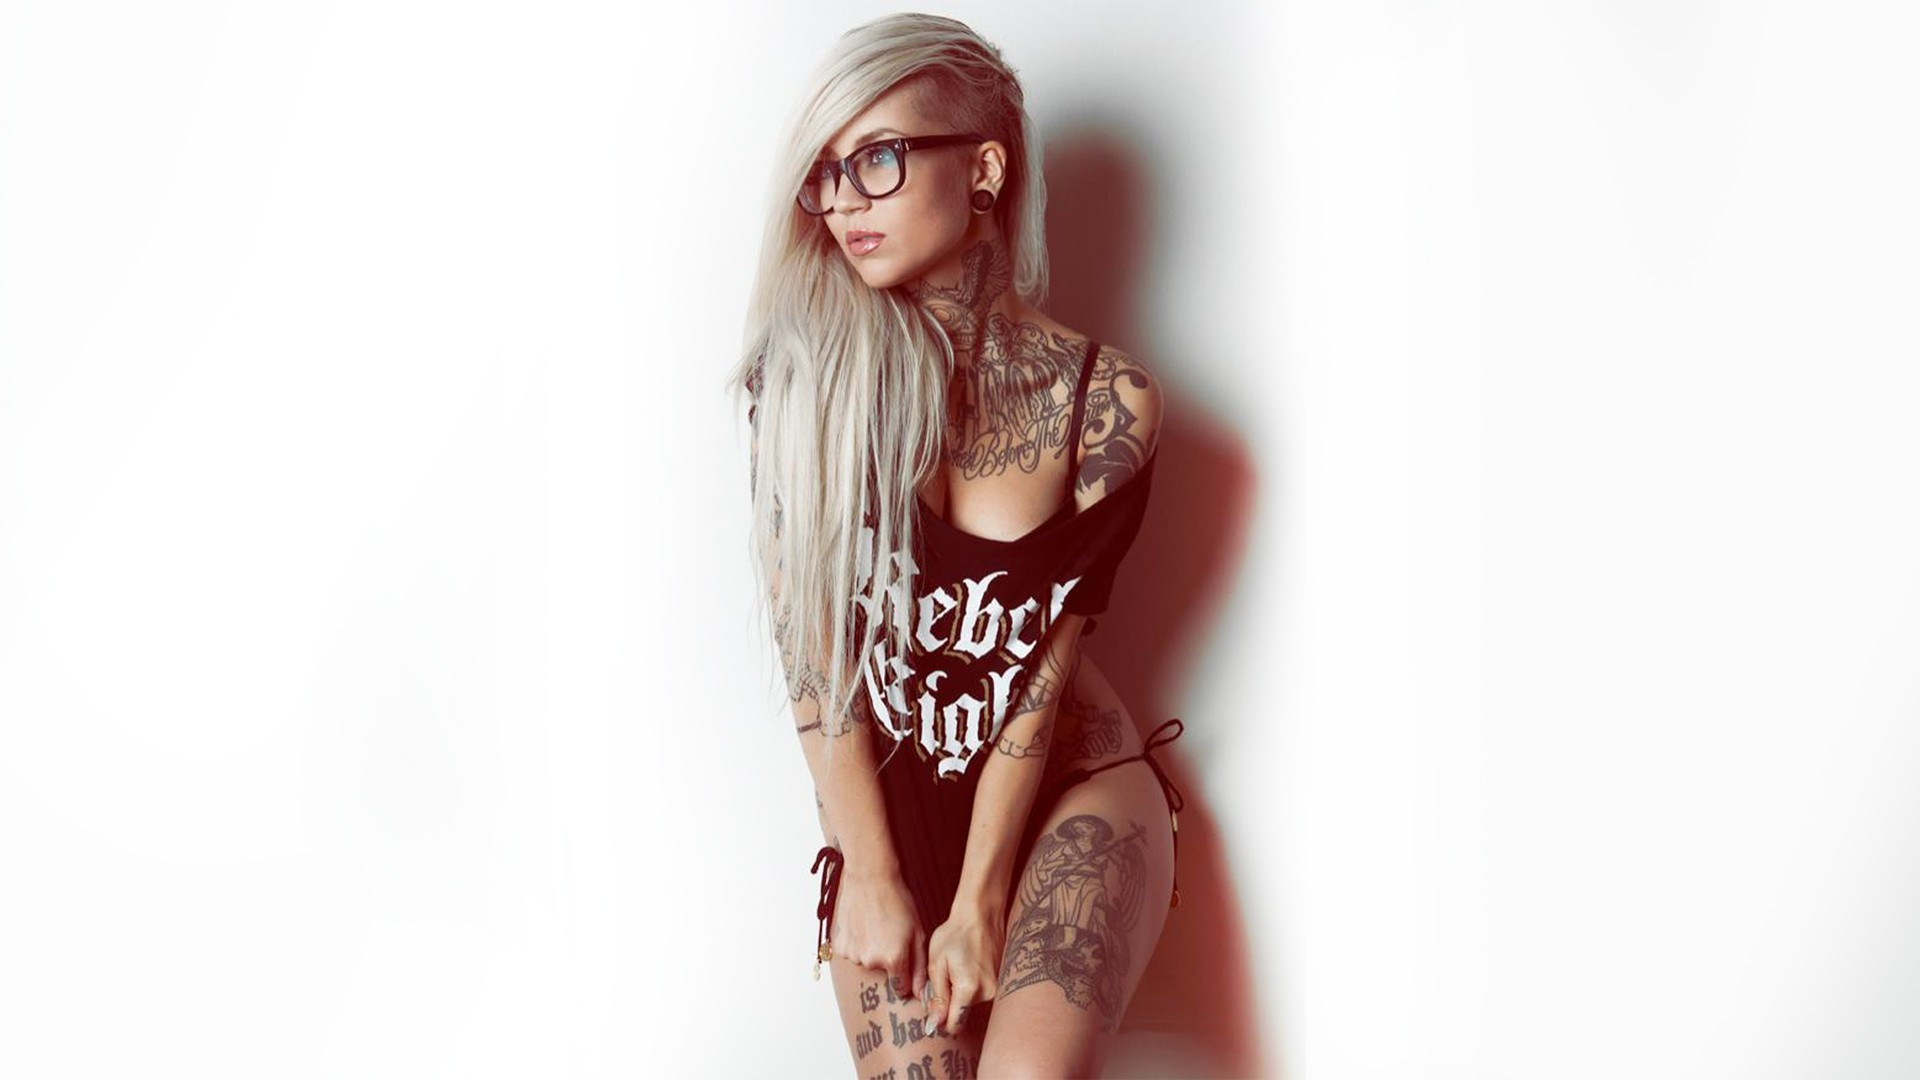 Tattoo Girl Wallpaper HD (72+ images)